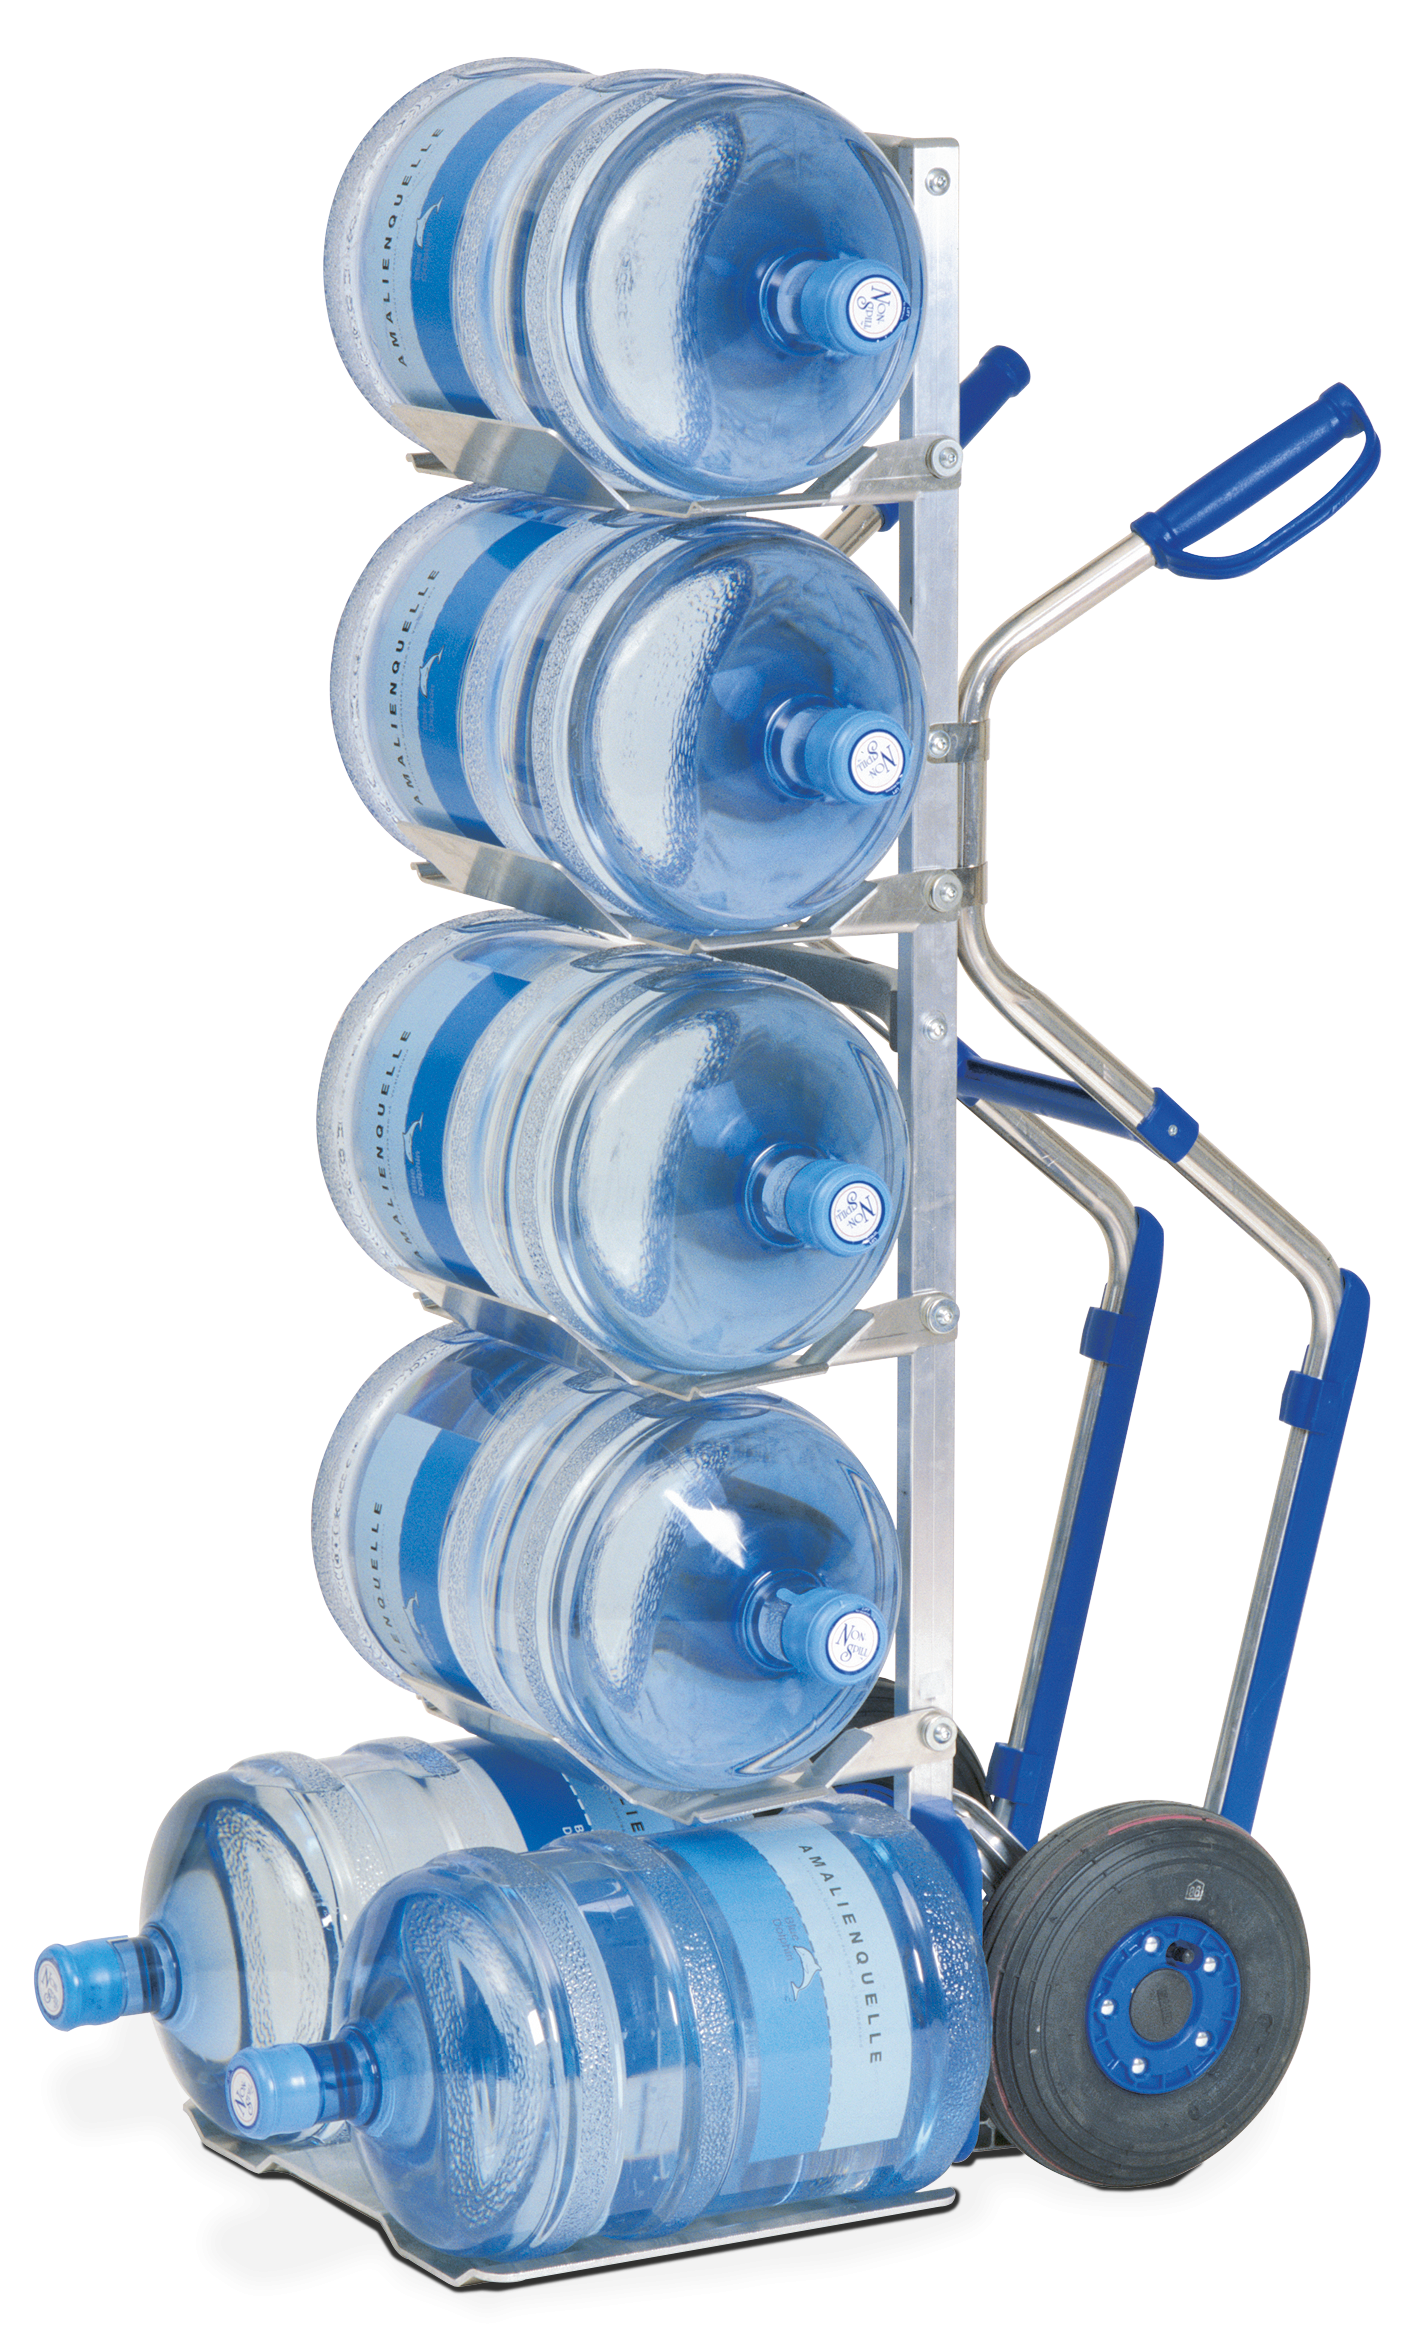 MODULKAR Water bottle truck with pistol grips and stair gliders for up to 6 water bottles